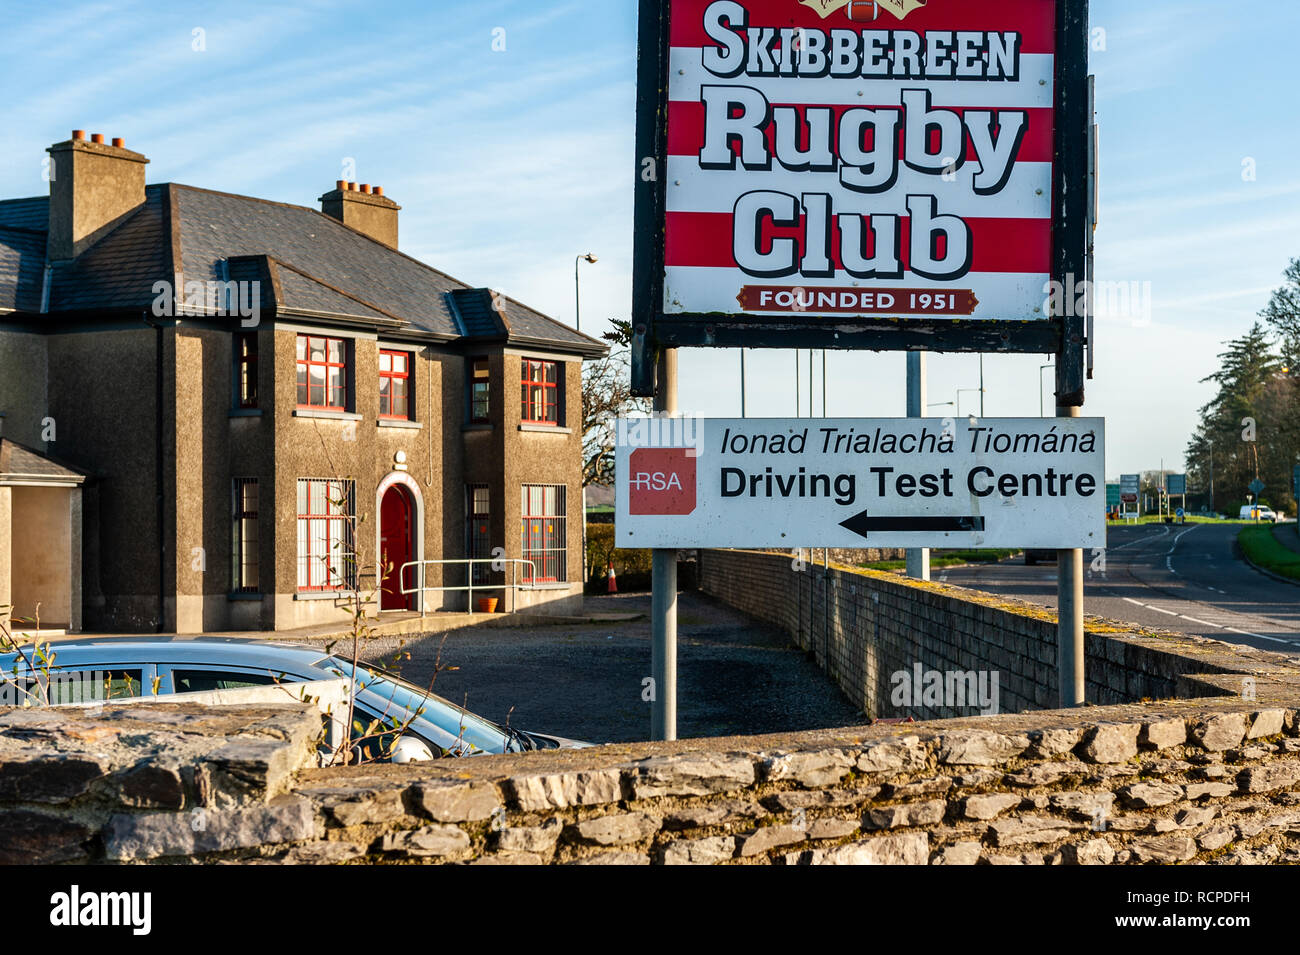 Skibbereen, Ireland Events & Things To Do   Eventbrite